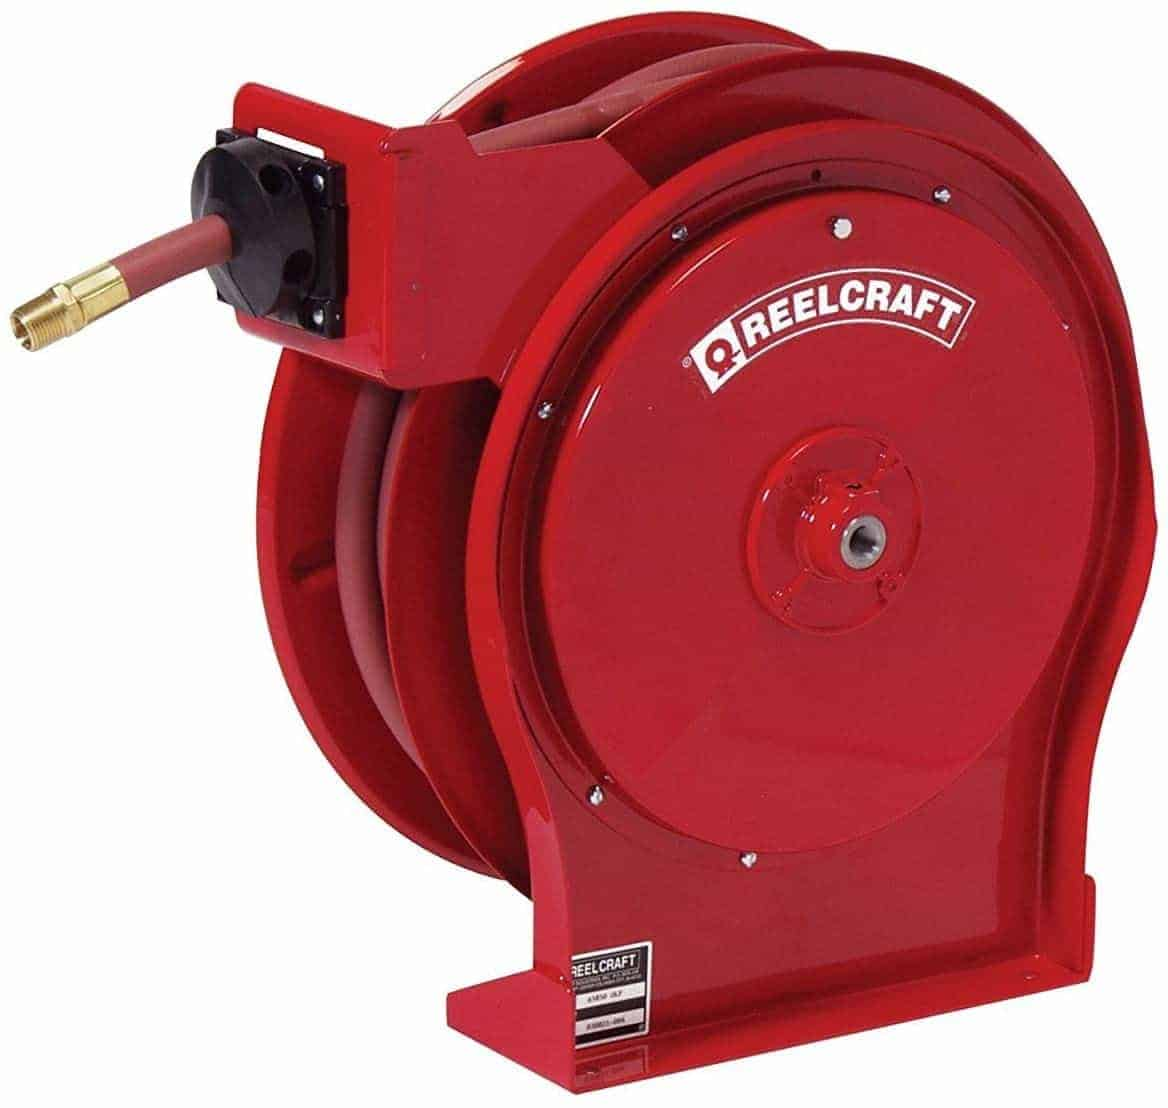 Reelcraft A5850 OLP Spring Driven Hose Reel